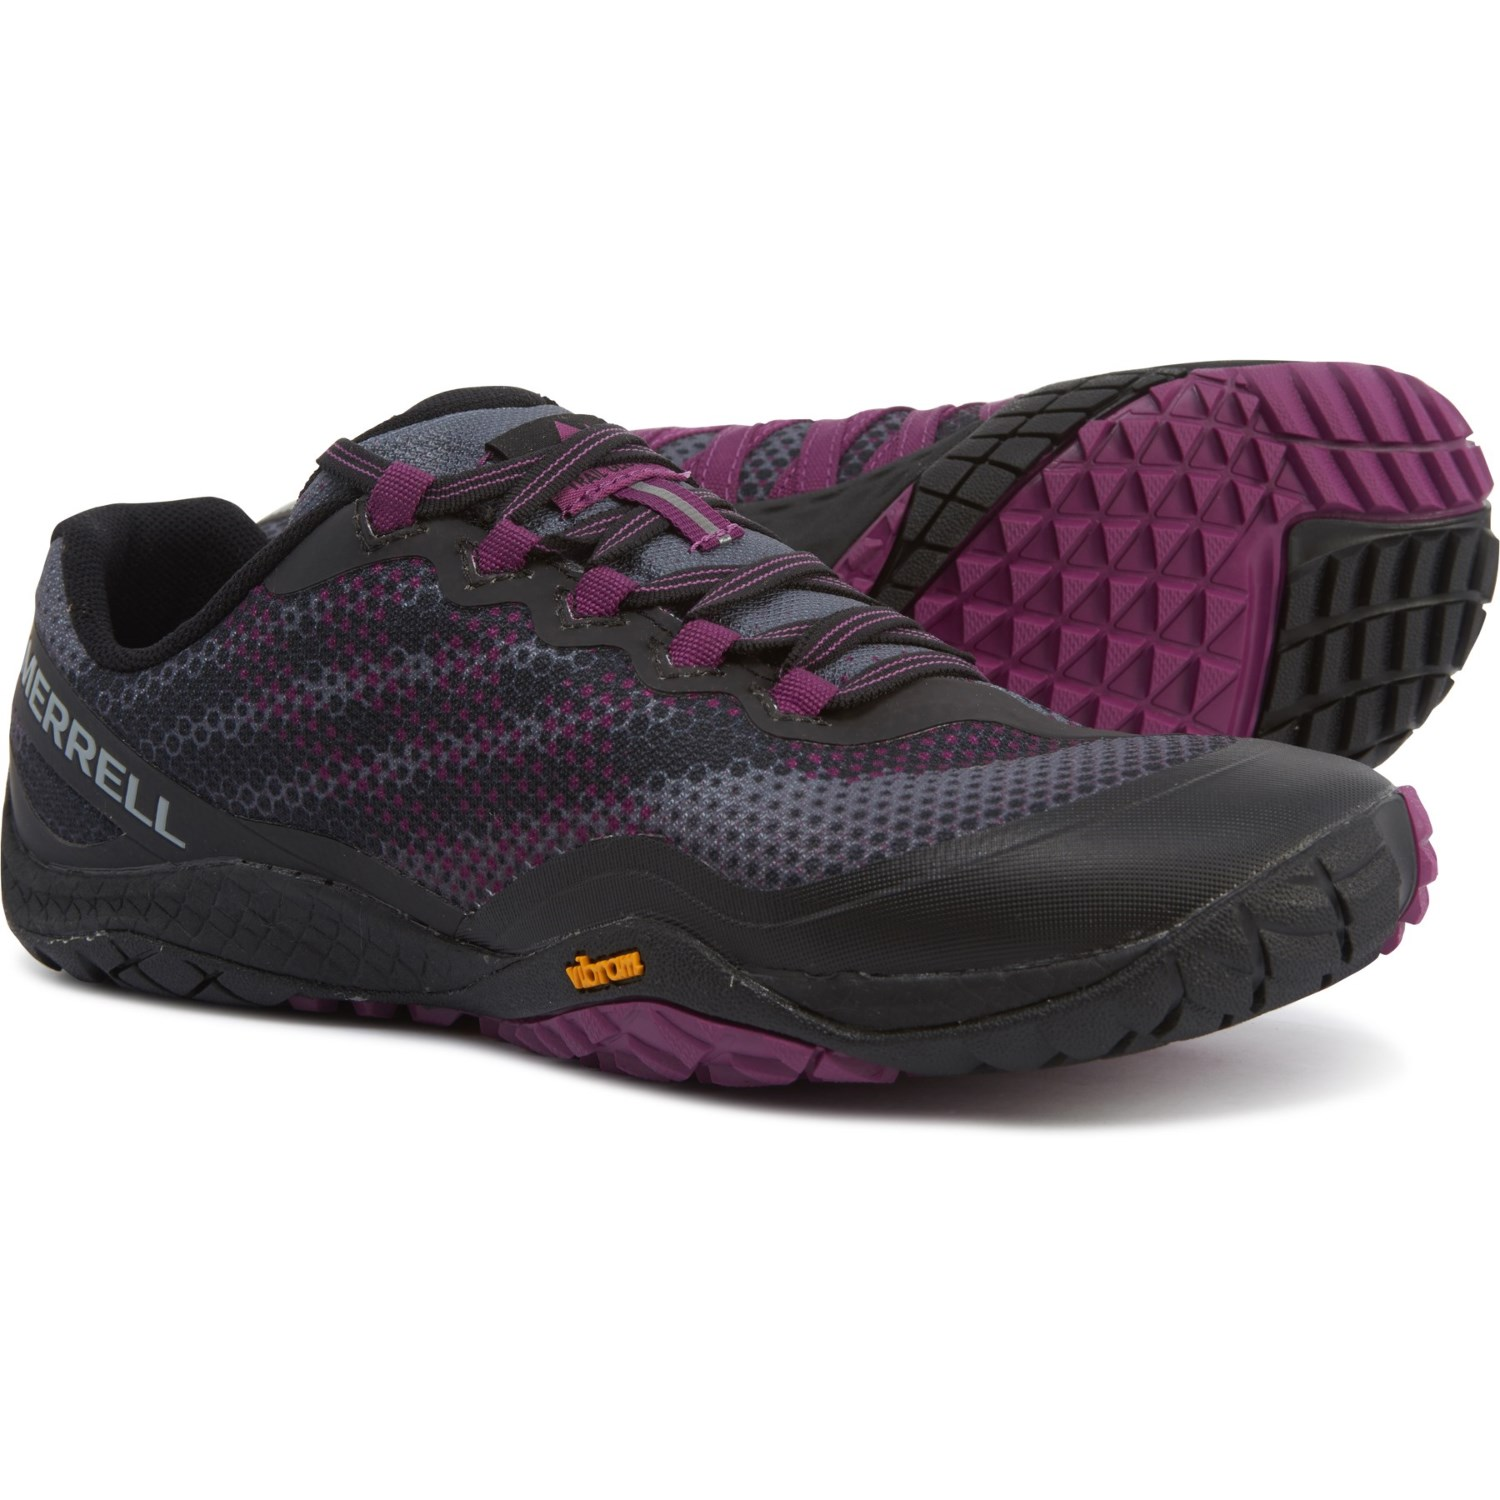 sale retailer 38aff 9c6d9 Merrell Trail Glove 4 Shield Running Shoes (For Women ...